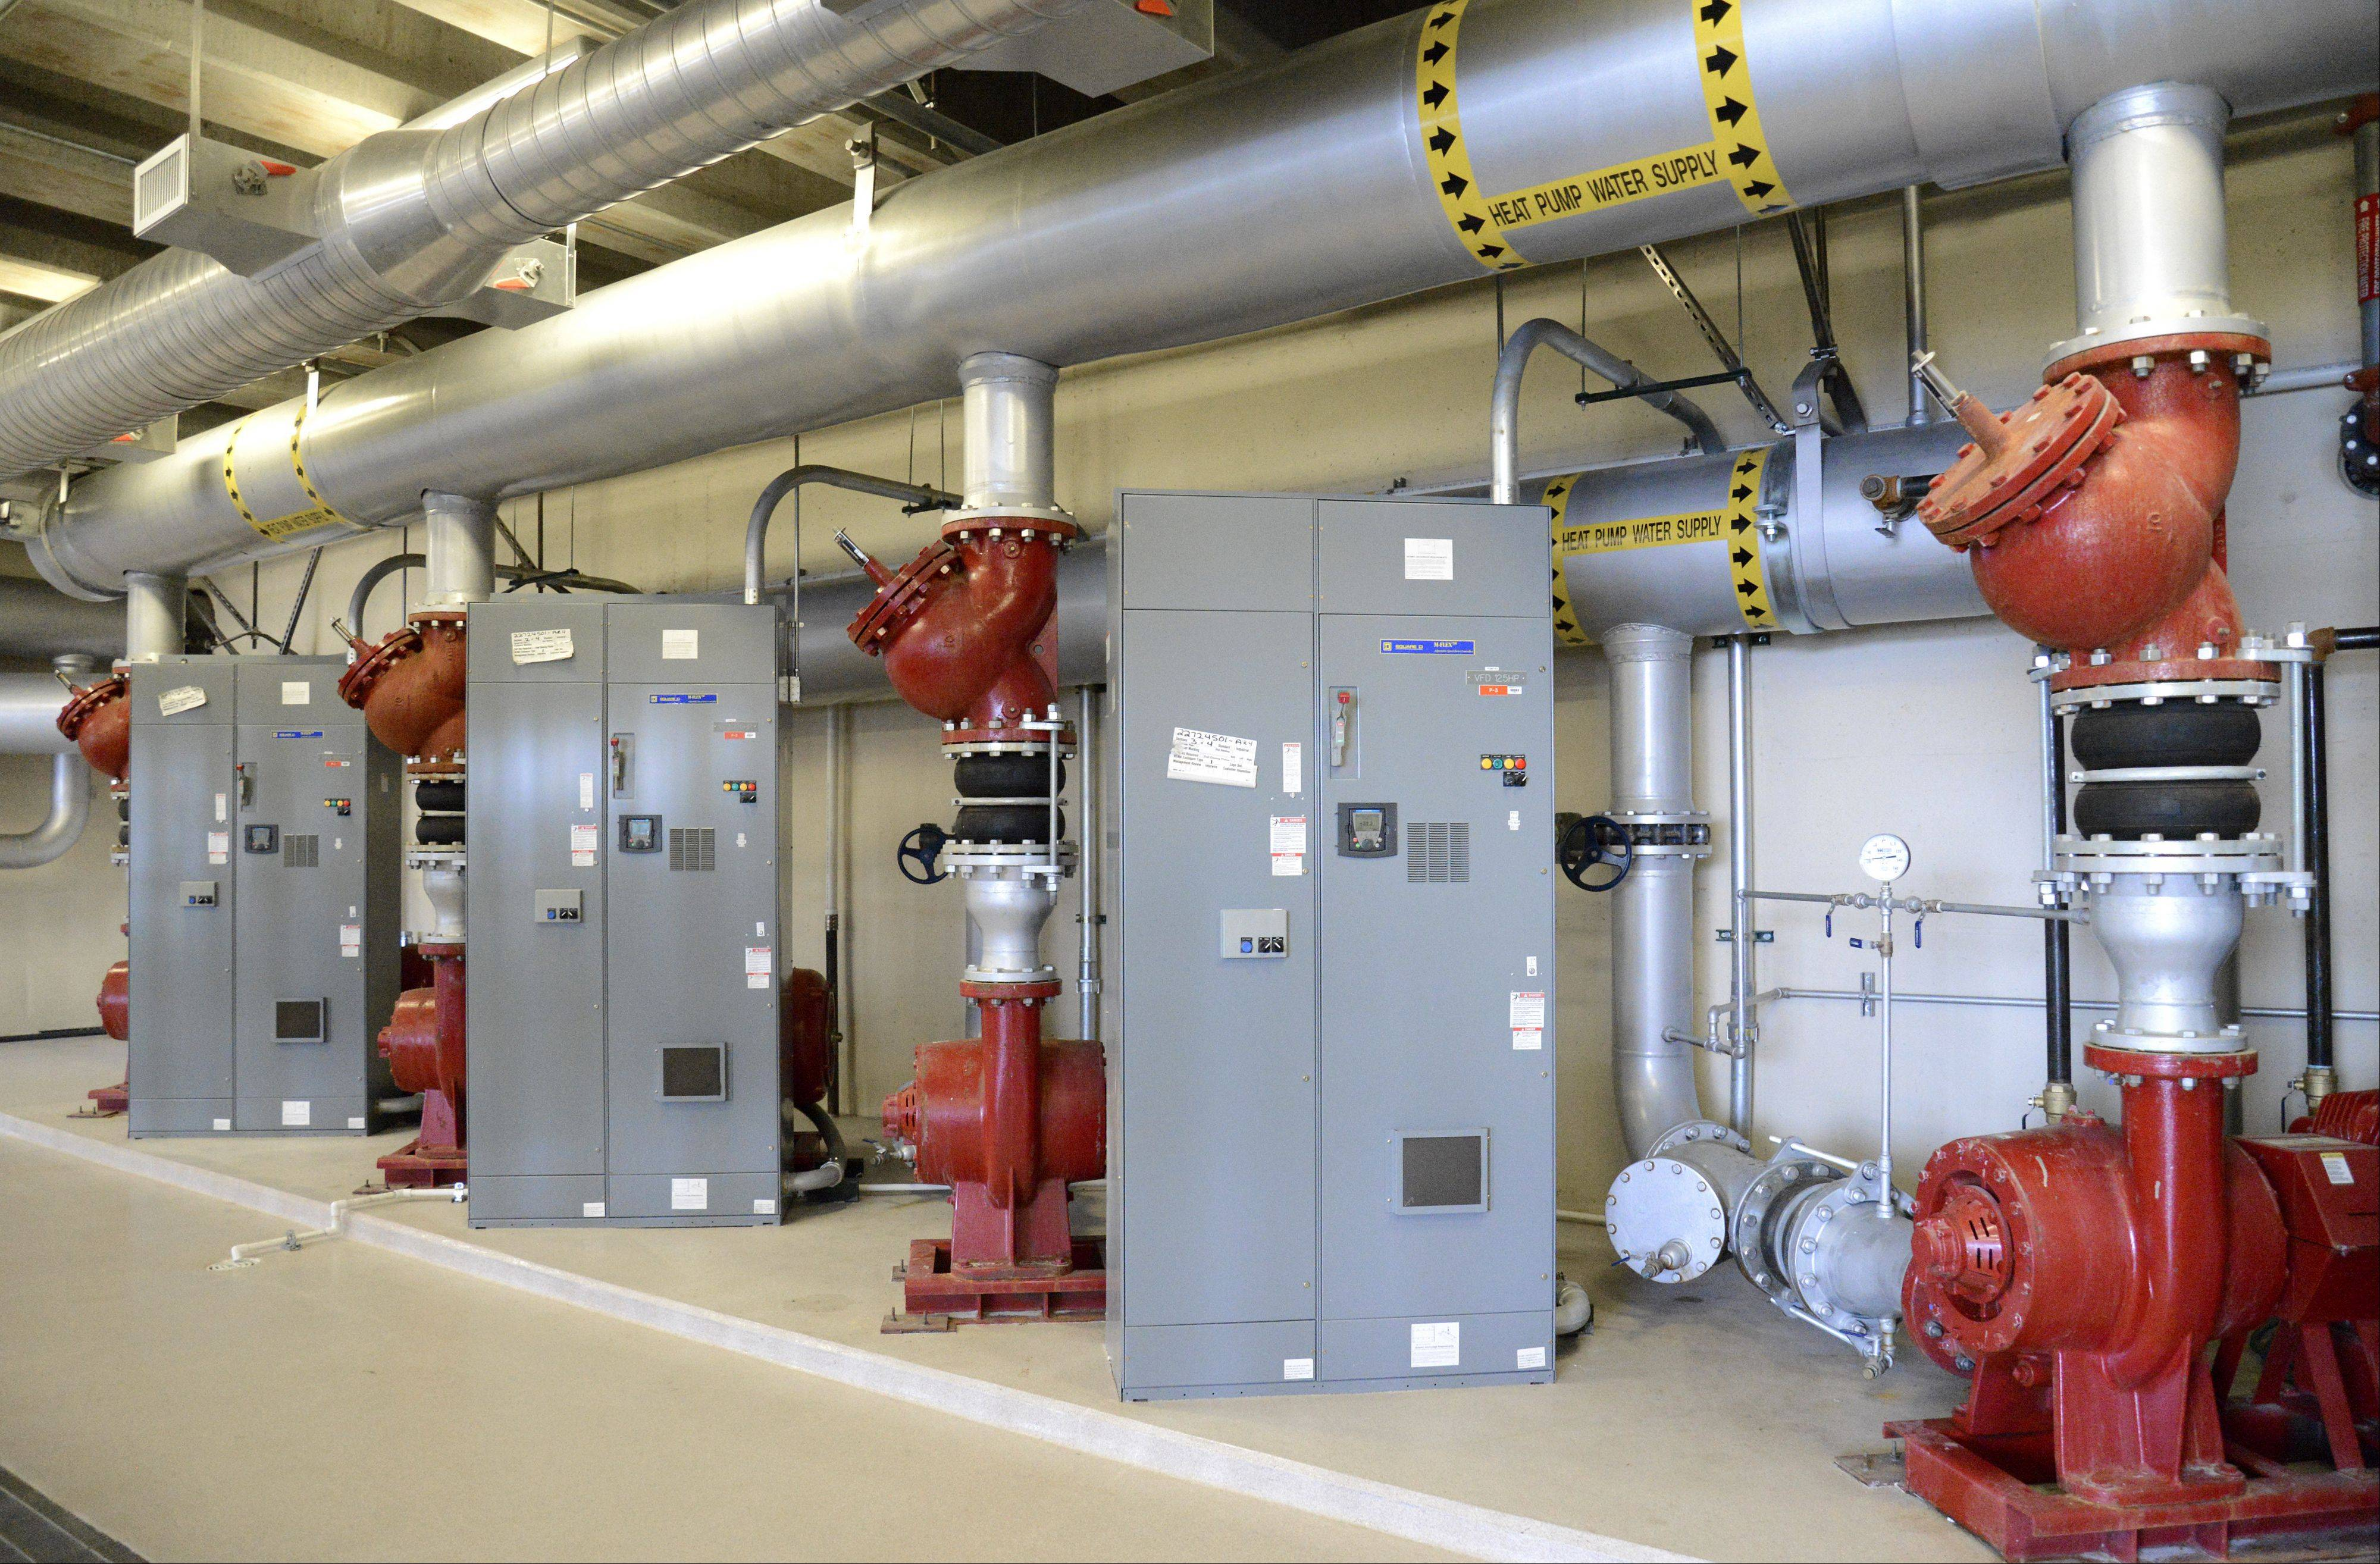 Advocate Sherman Hospital's geothermal system, which heats and cools the hospital through a 15-acre lake, includes four circulating pumps.